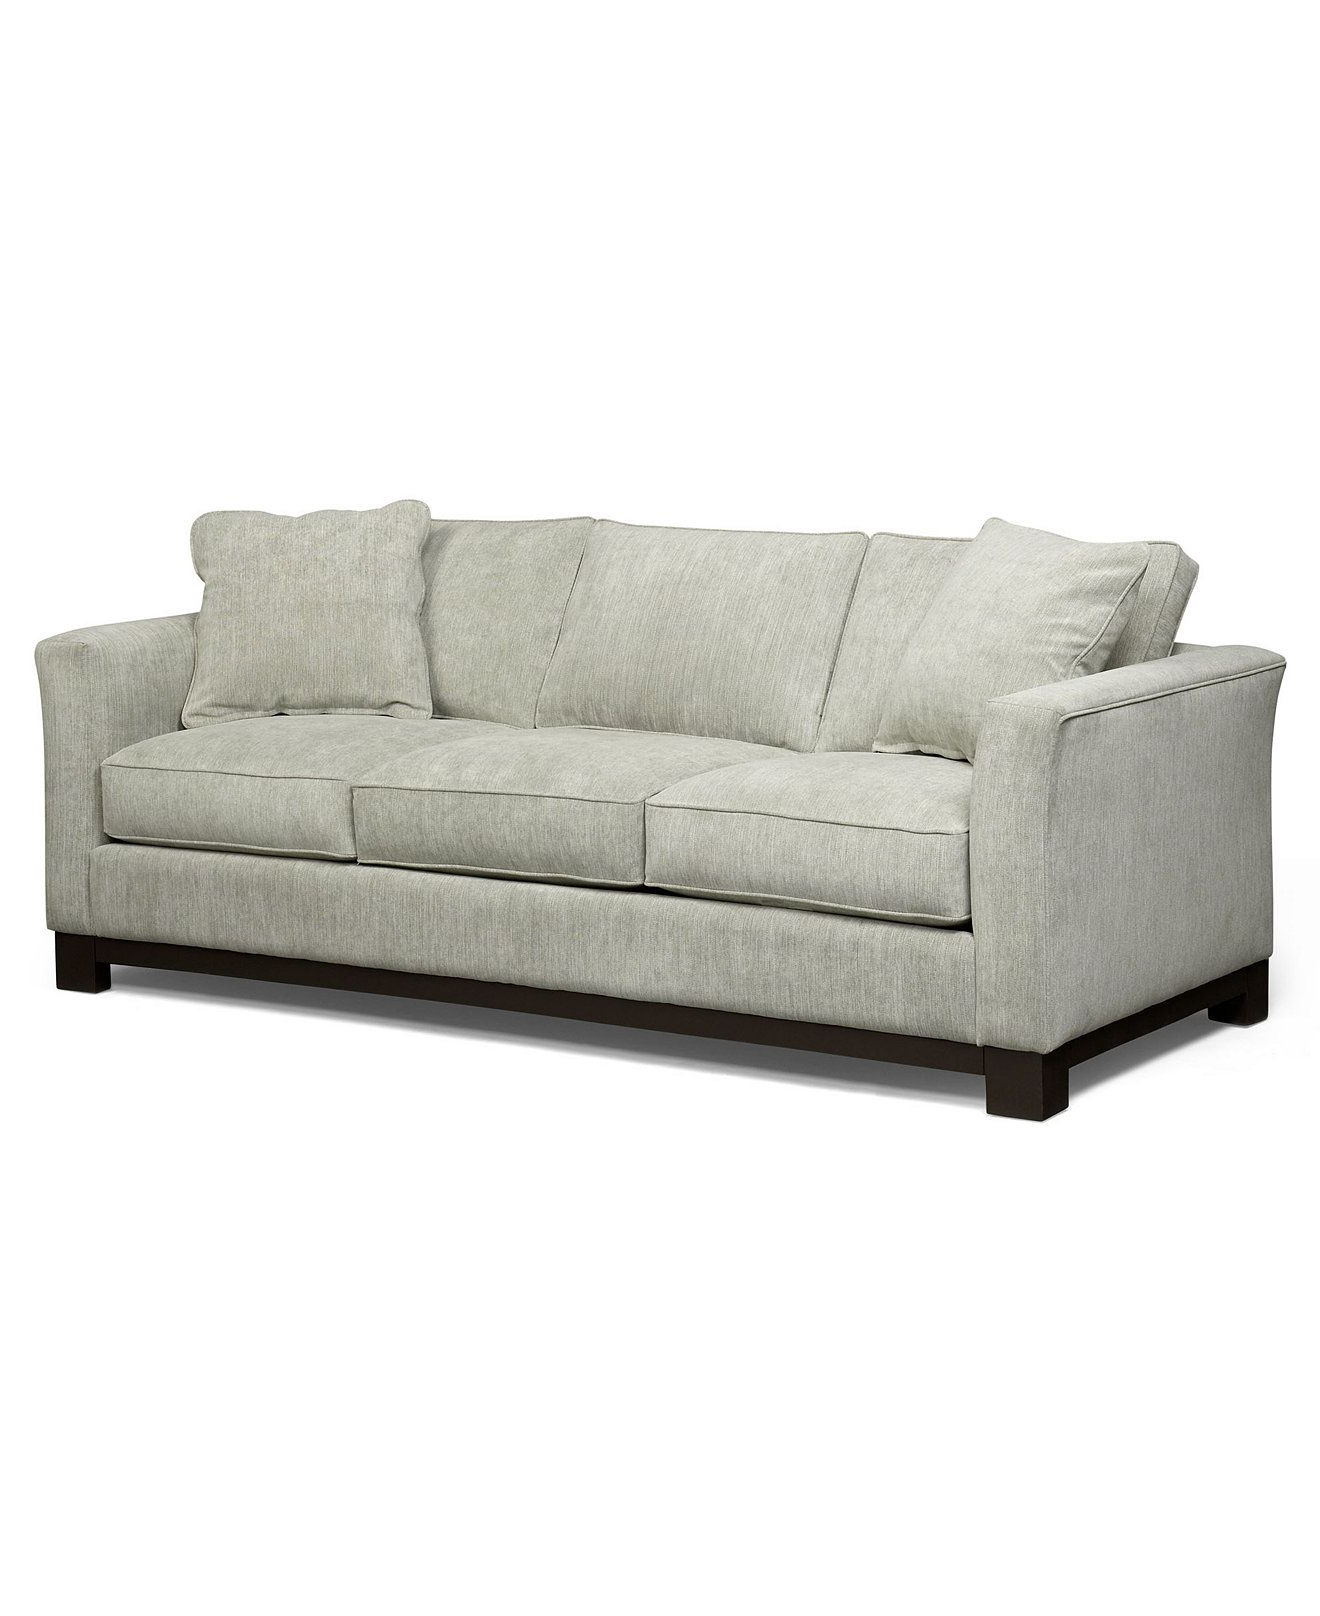 Recent Harper Down Oversized Sofa Chairs For Kenton Fabric Sofa – Couches & Sofas – Furniture – Macy's. Under (Gallery 16 of 20)